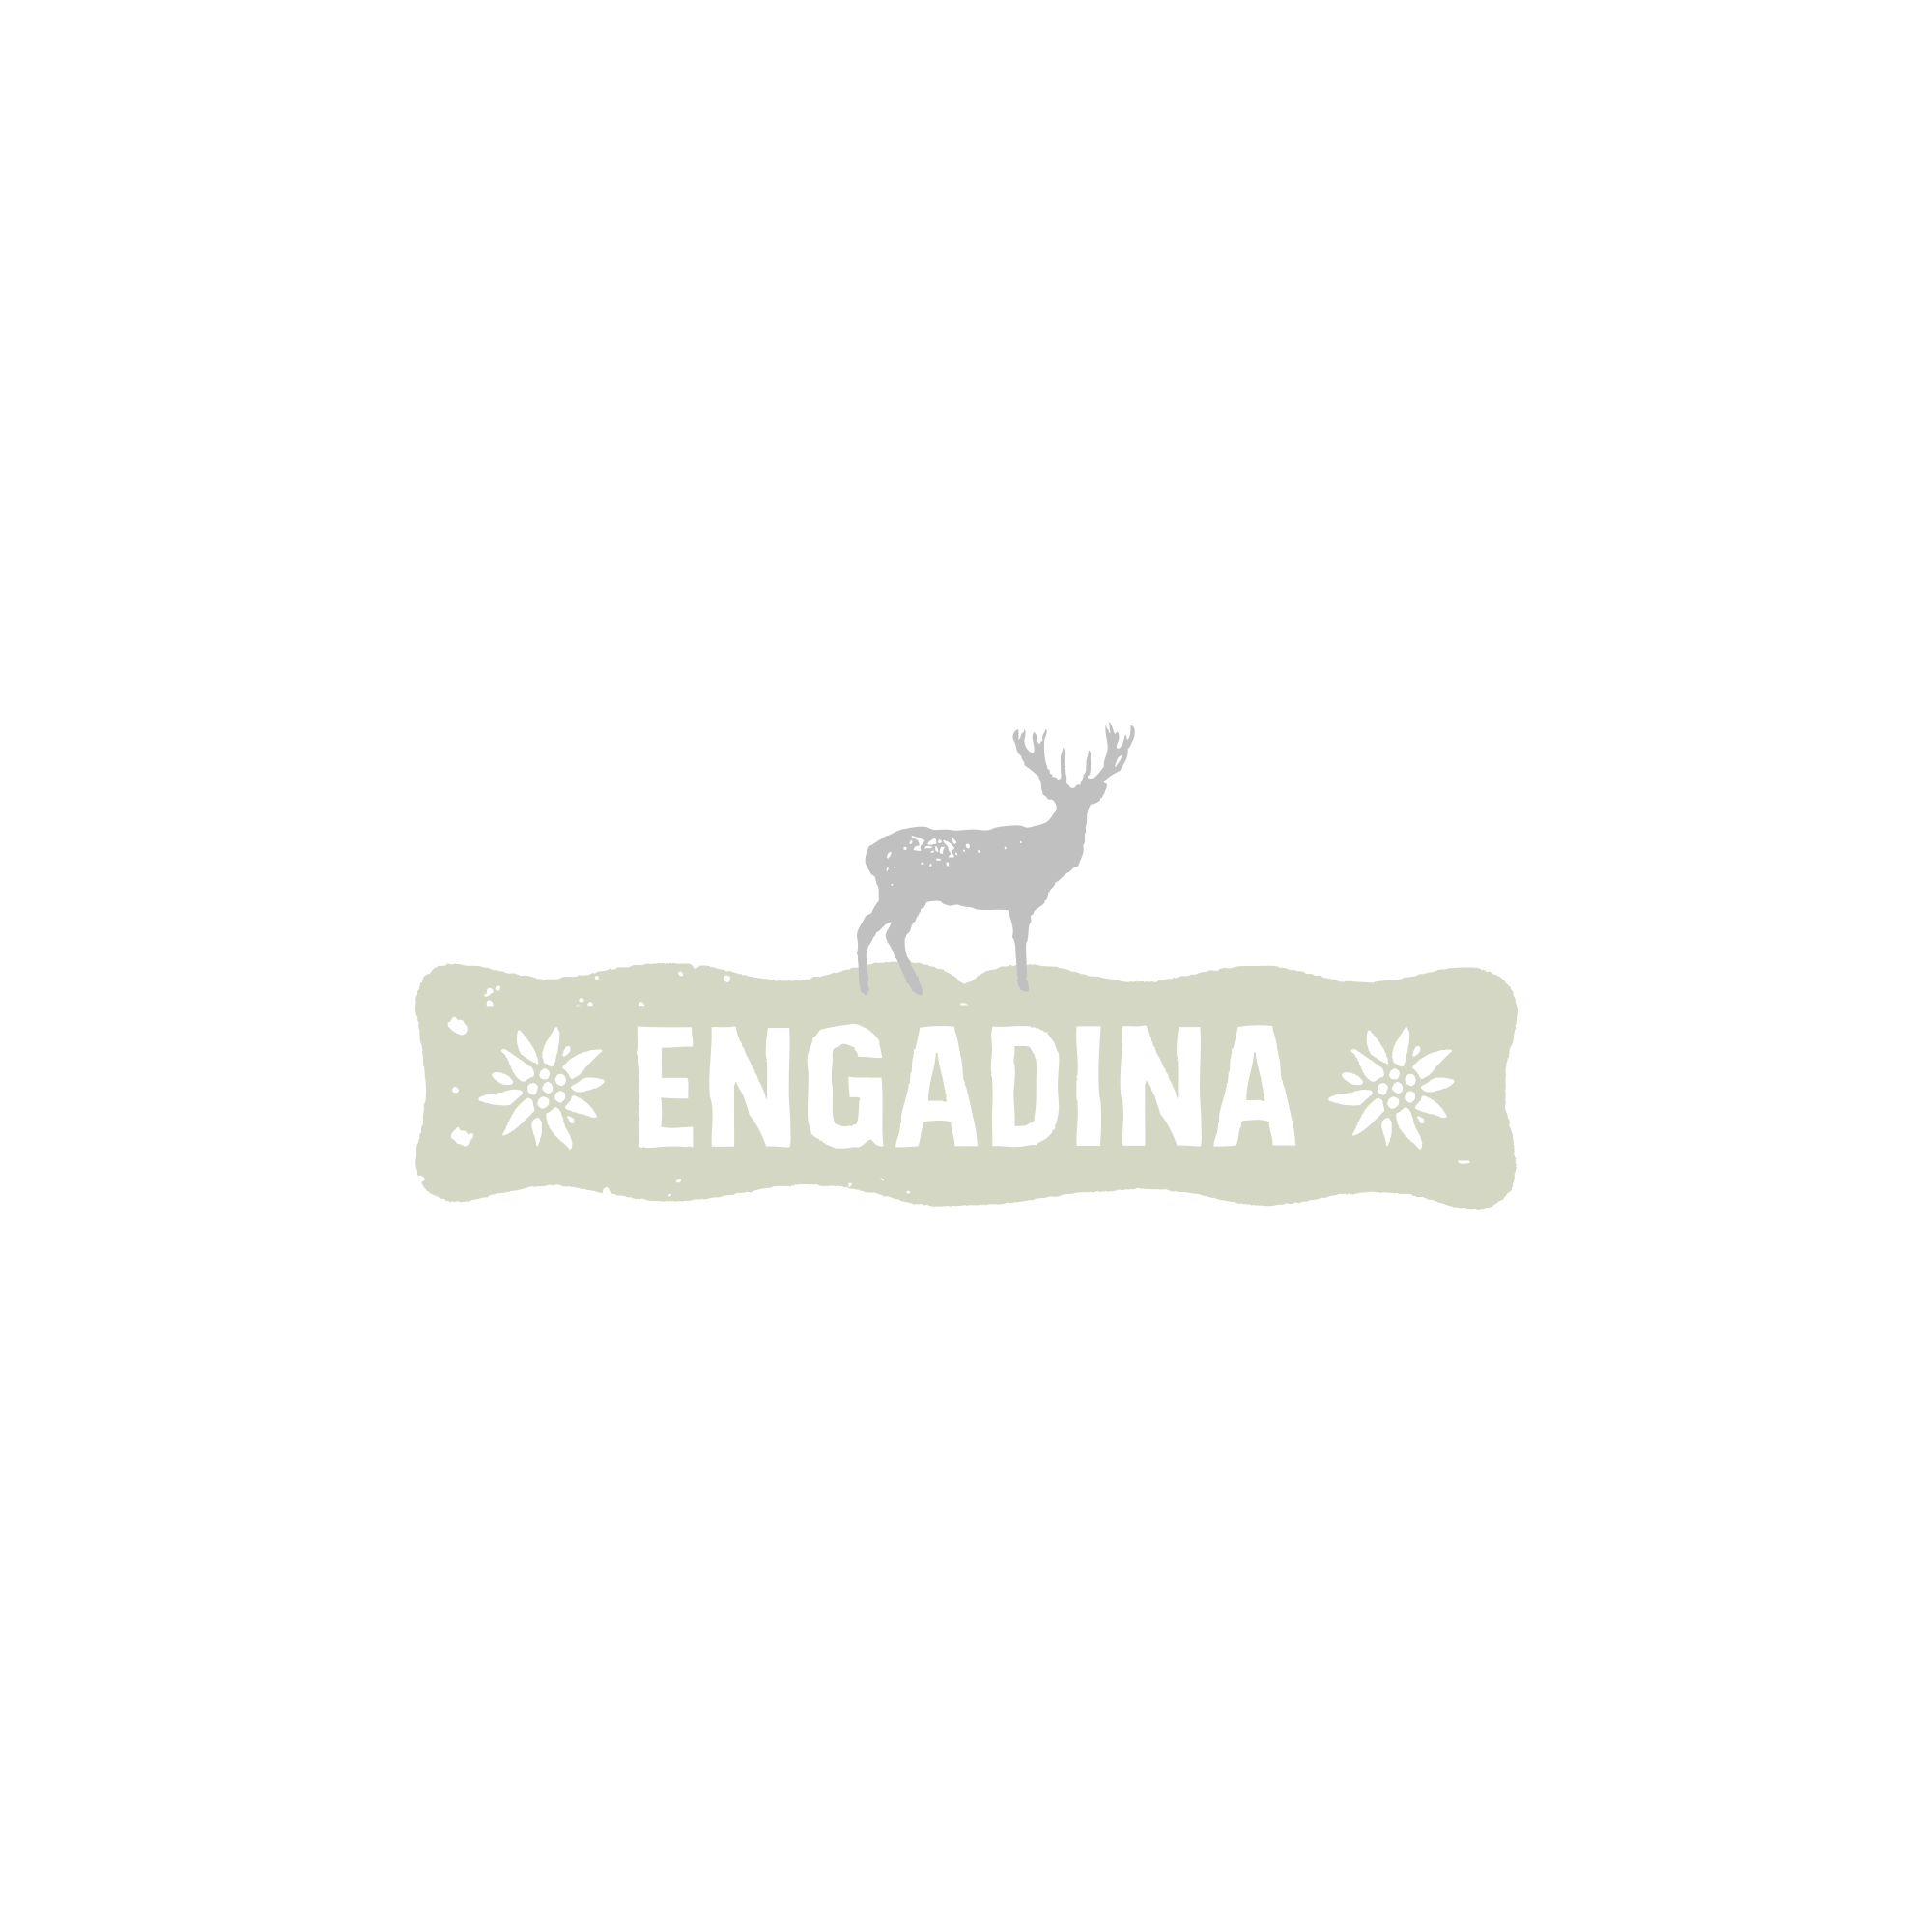 www.engadinalivigno.it